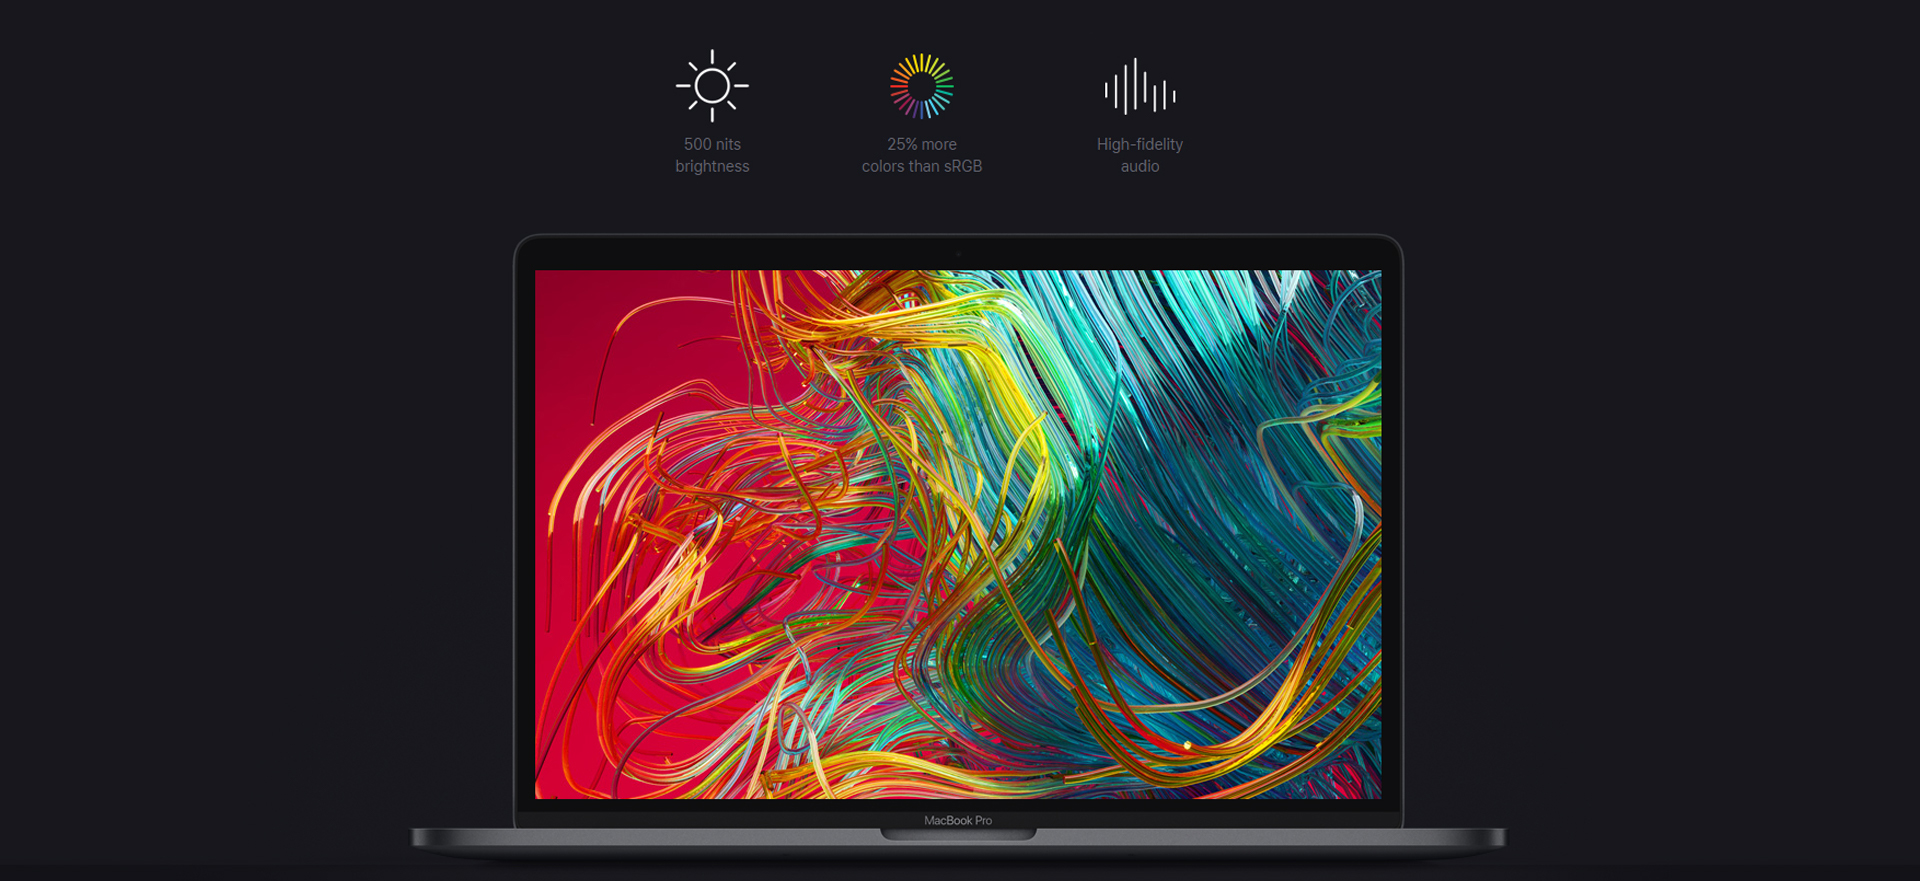 MBP132017-s-view9